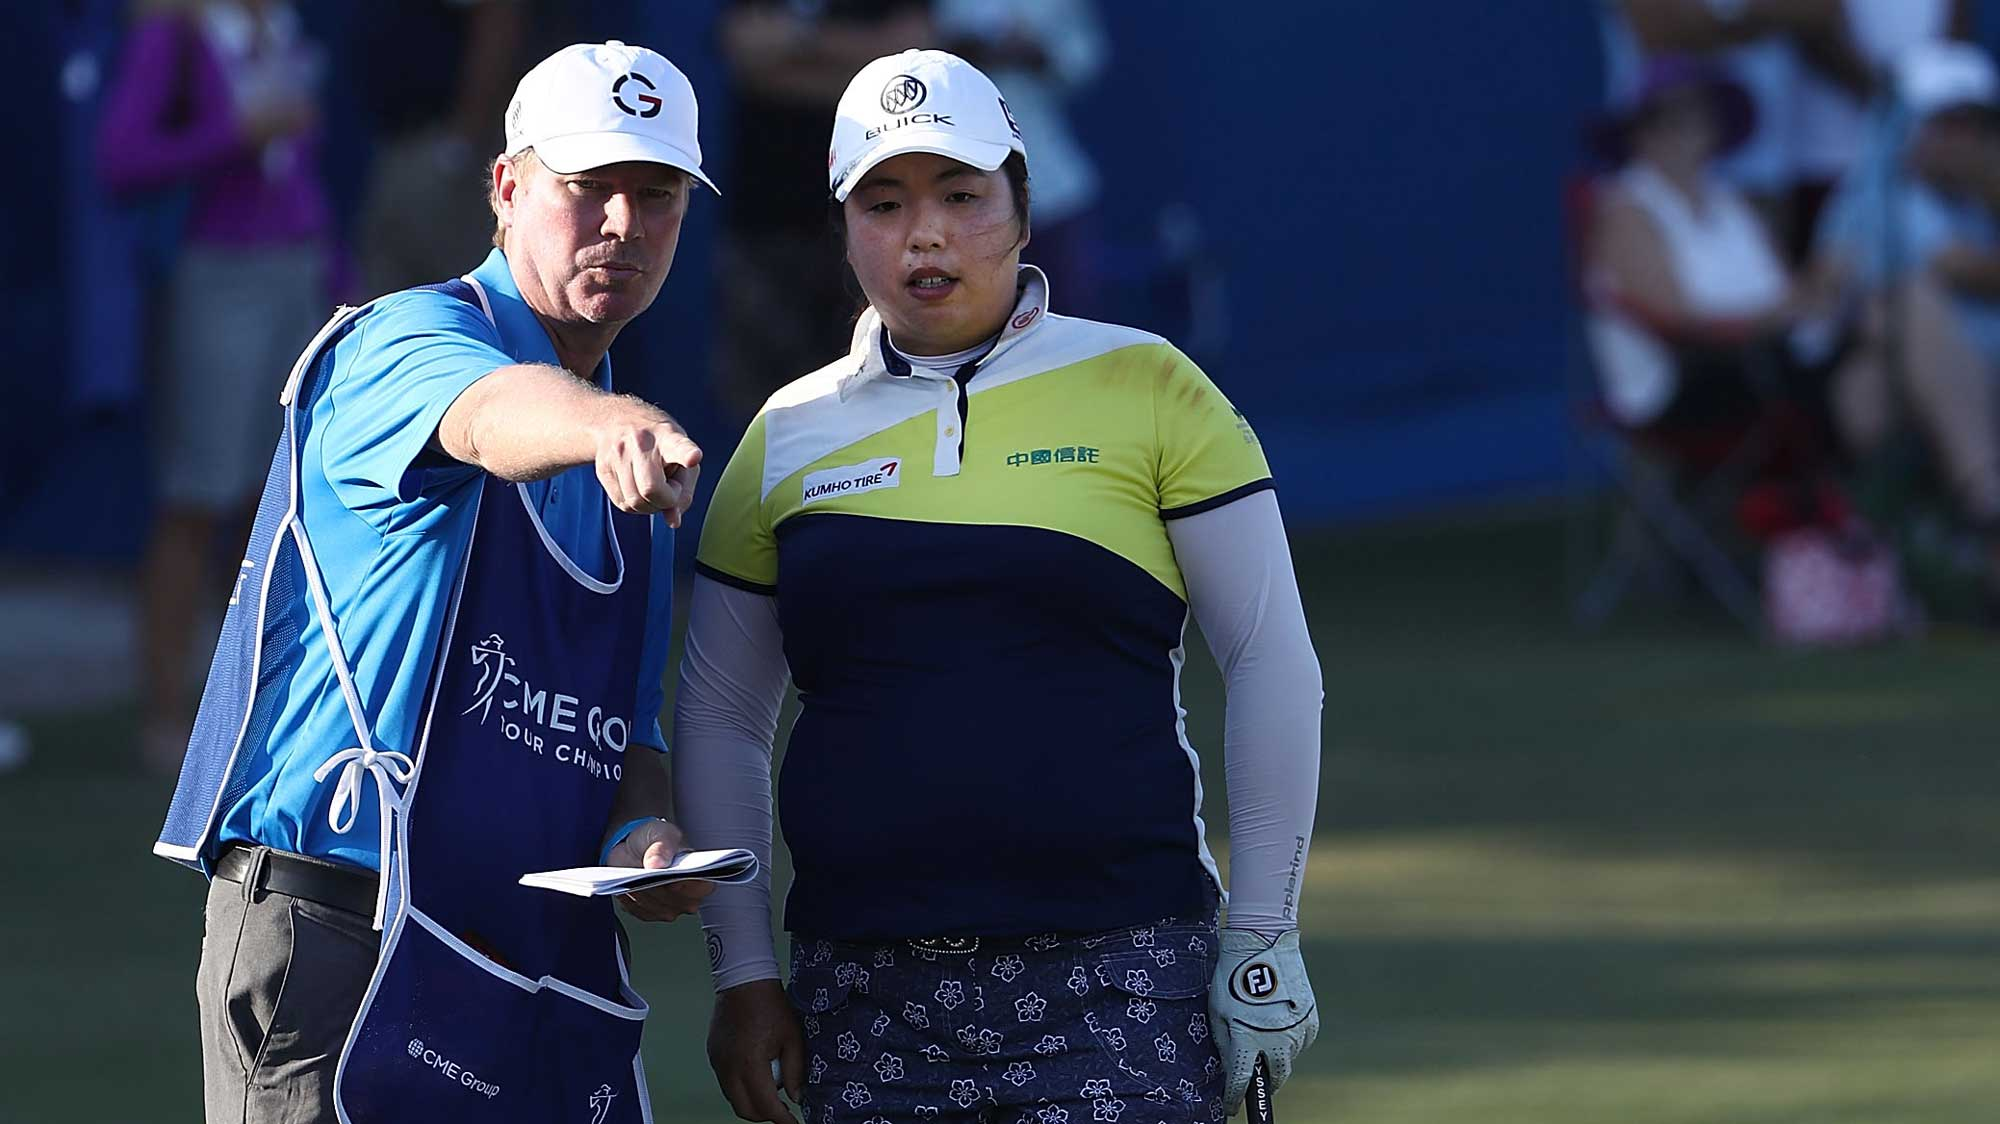 Shanshan Feng of China prepares to play her shot on the second hole during the first round of the CME Group Tour Championship at Tiburon Golf Club